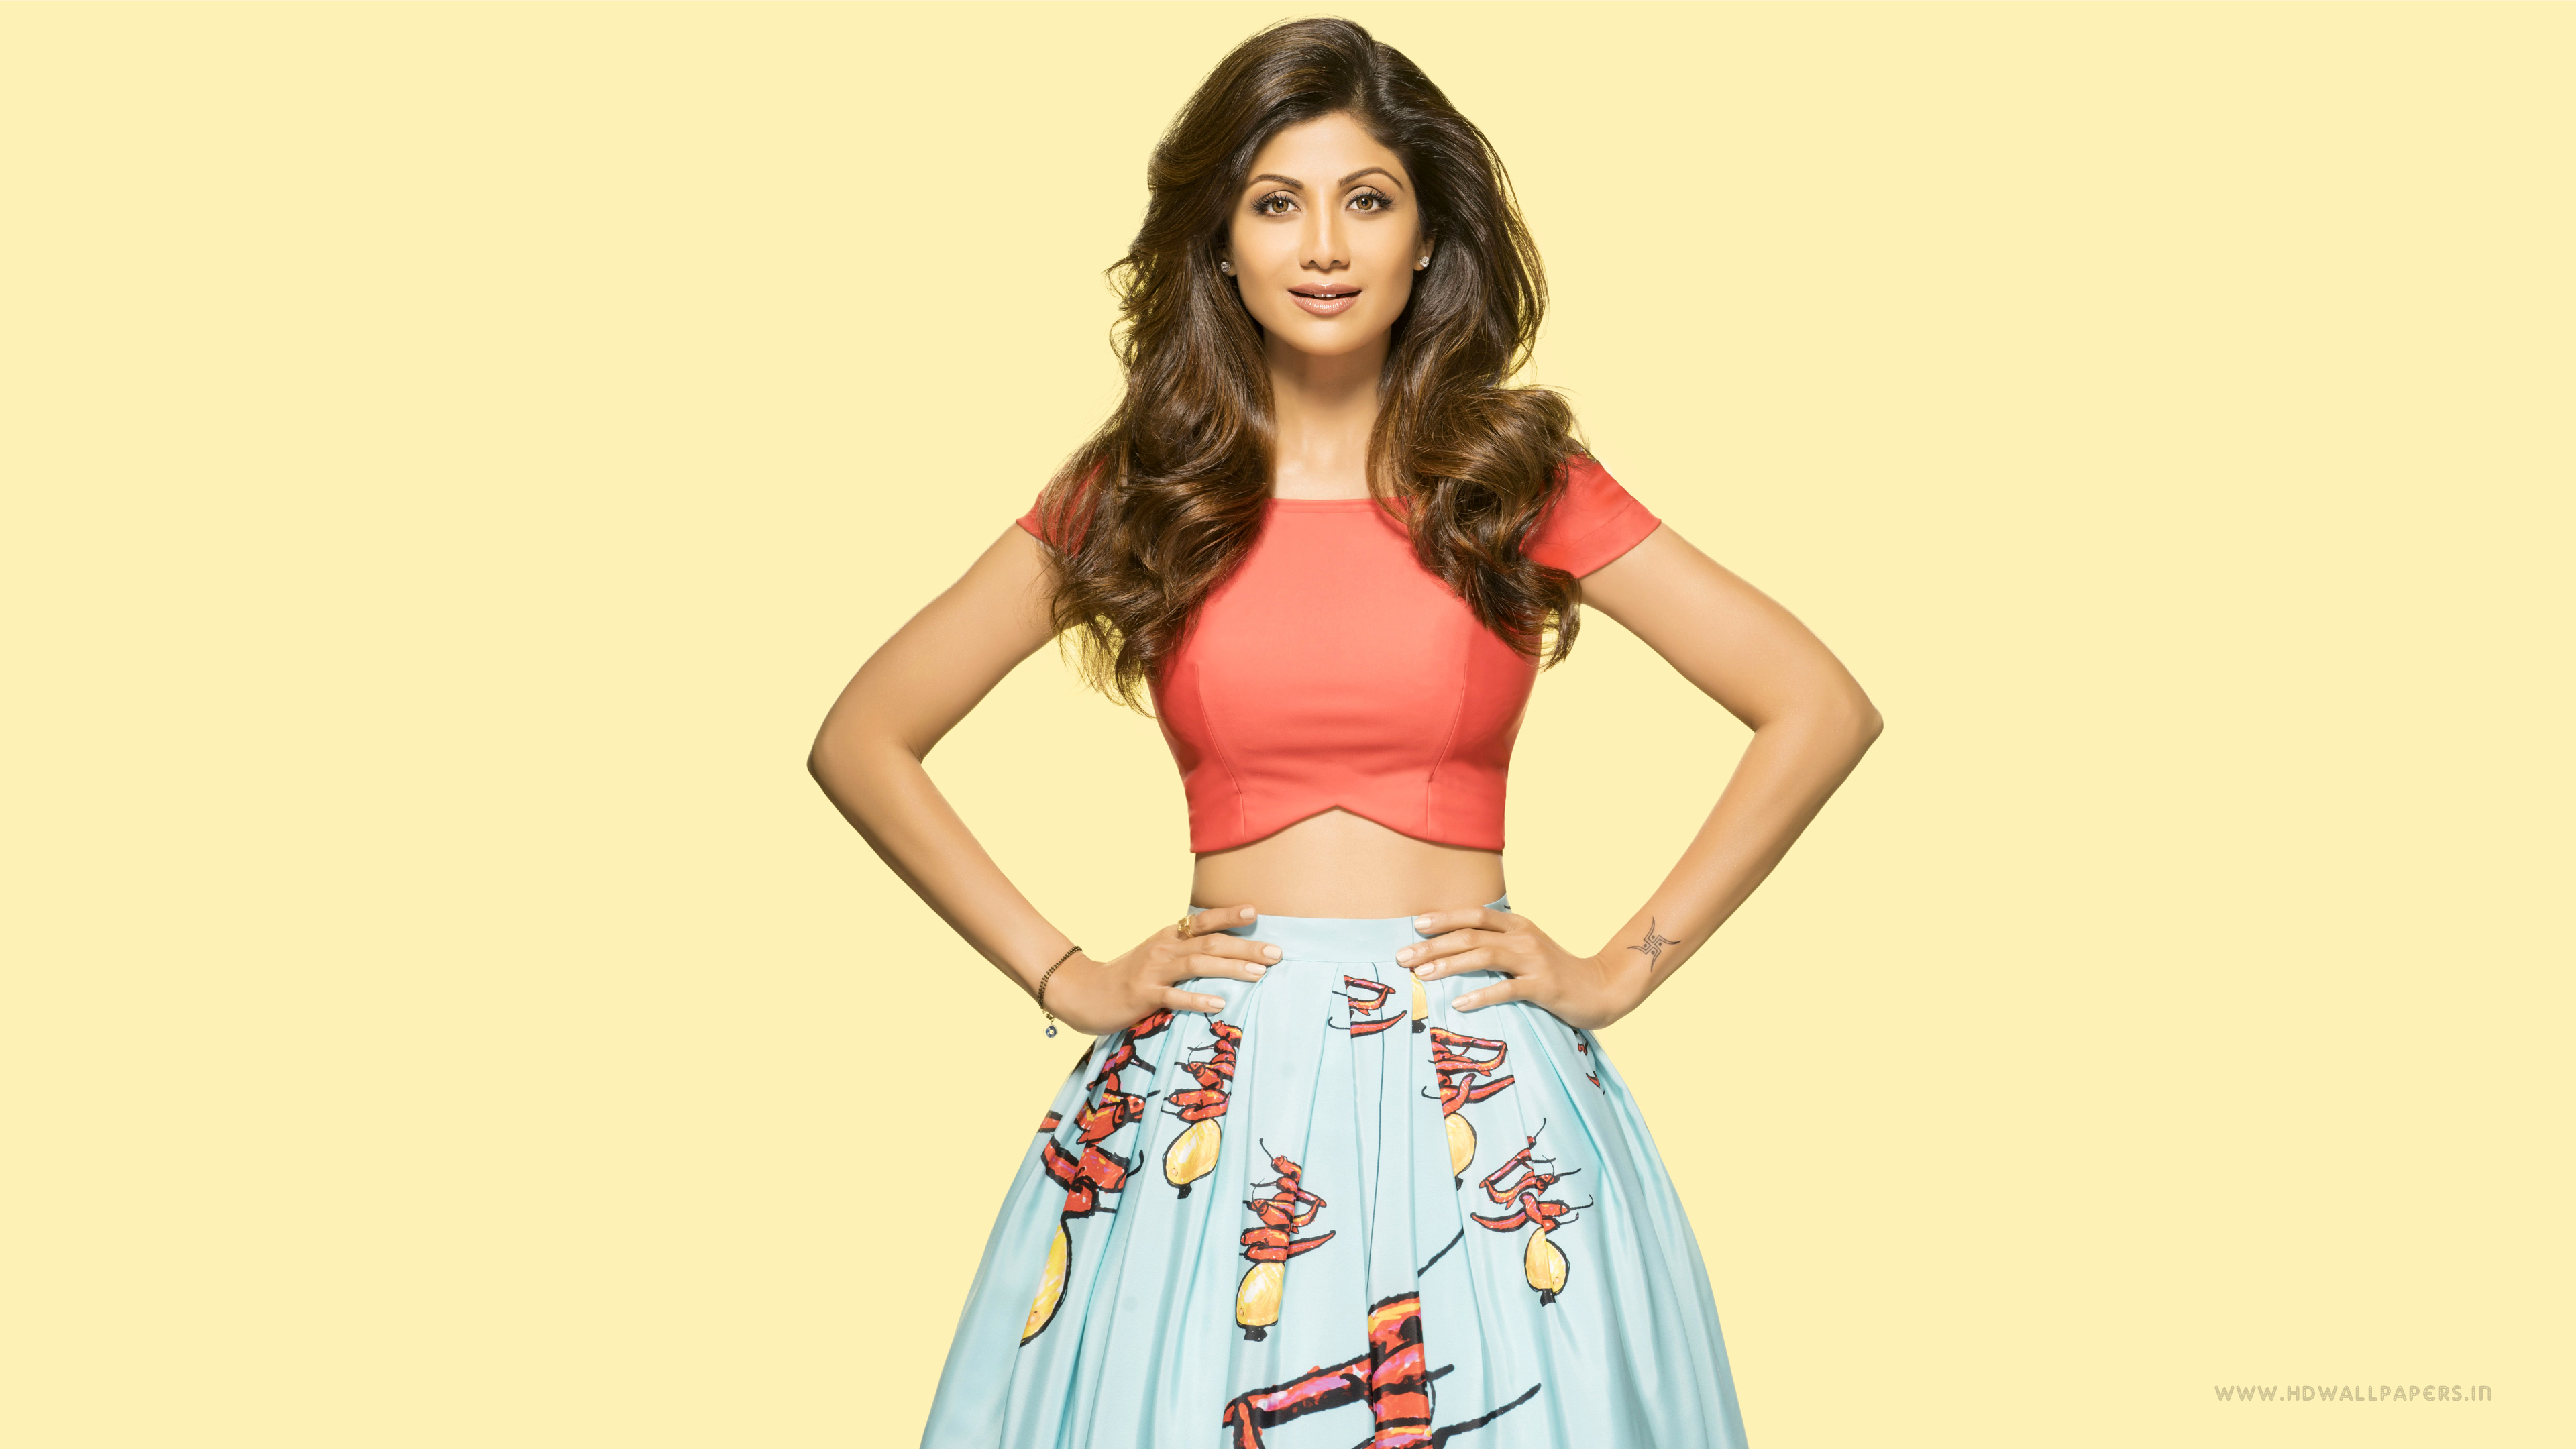 Indian Actress Shilpa Shetty 4K Wallpaper-7343